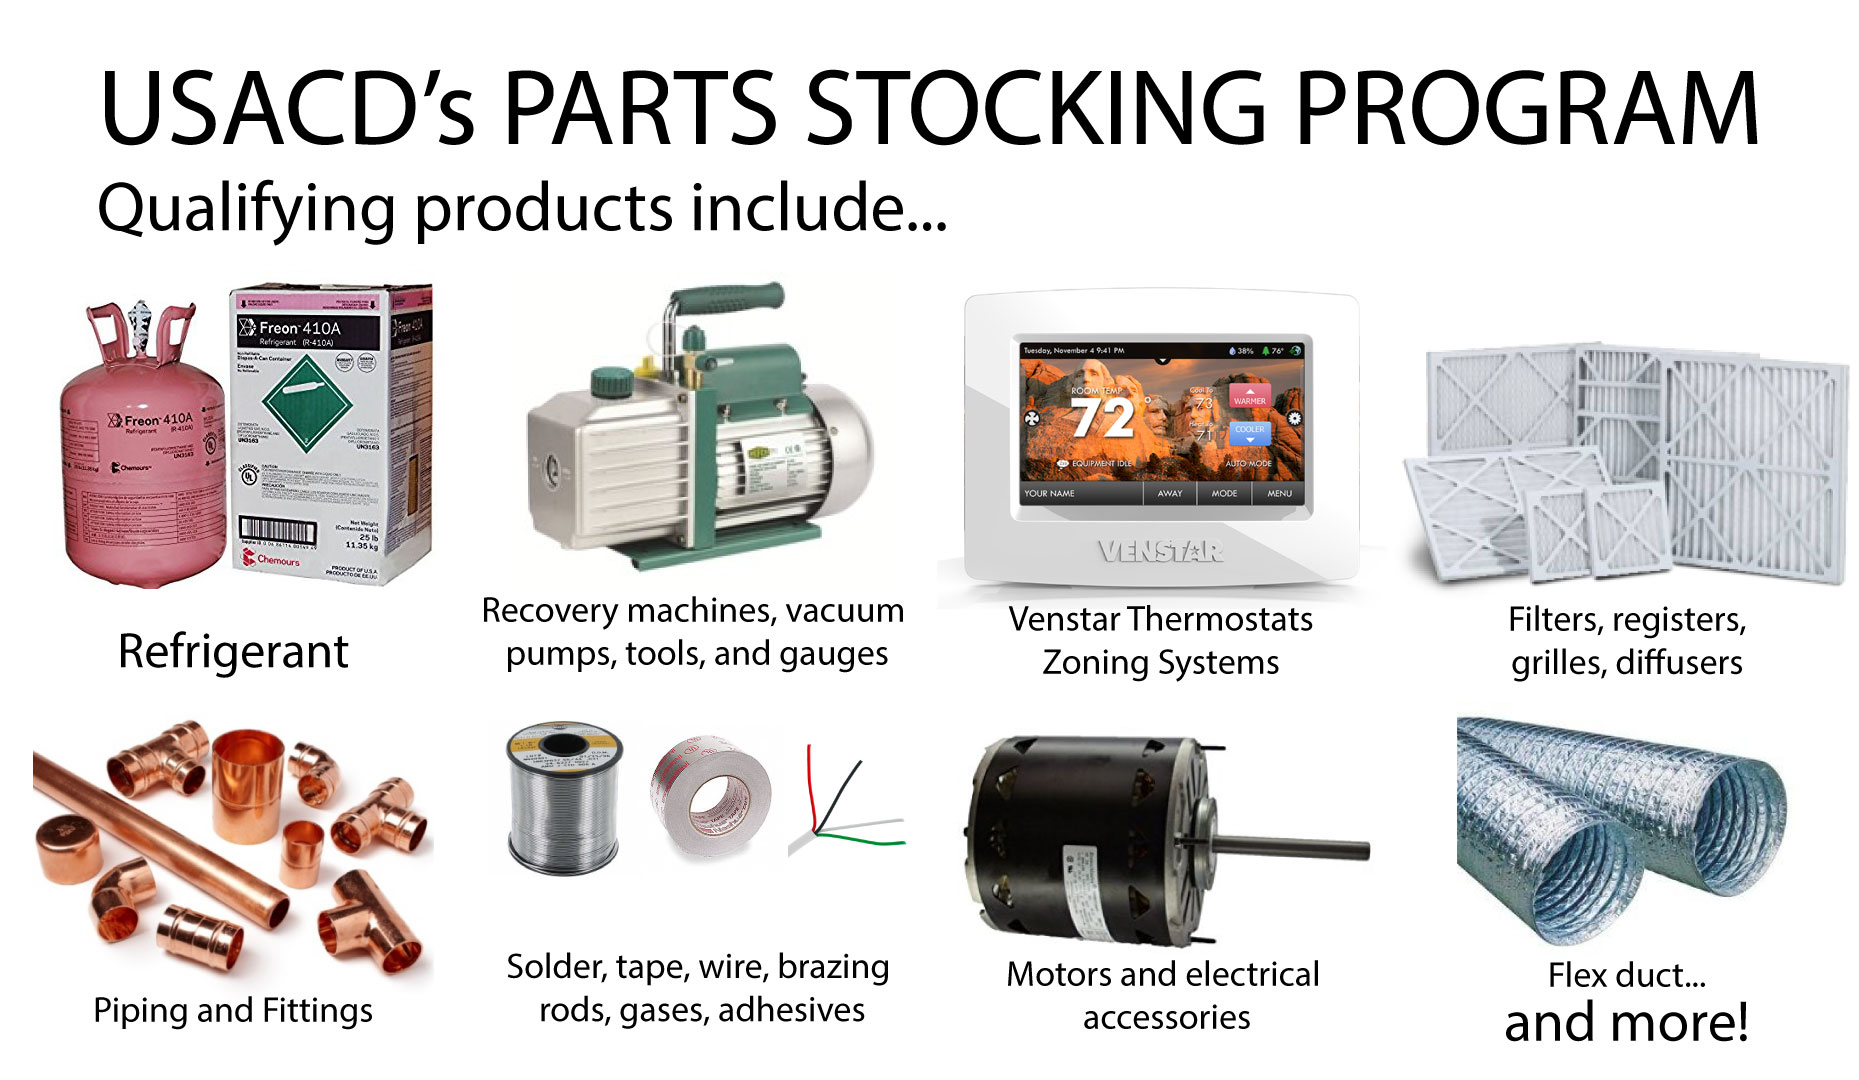 Introducing USACD's Parts Stocking Program | US Air Conditioning